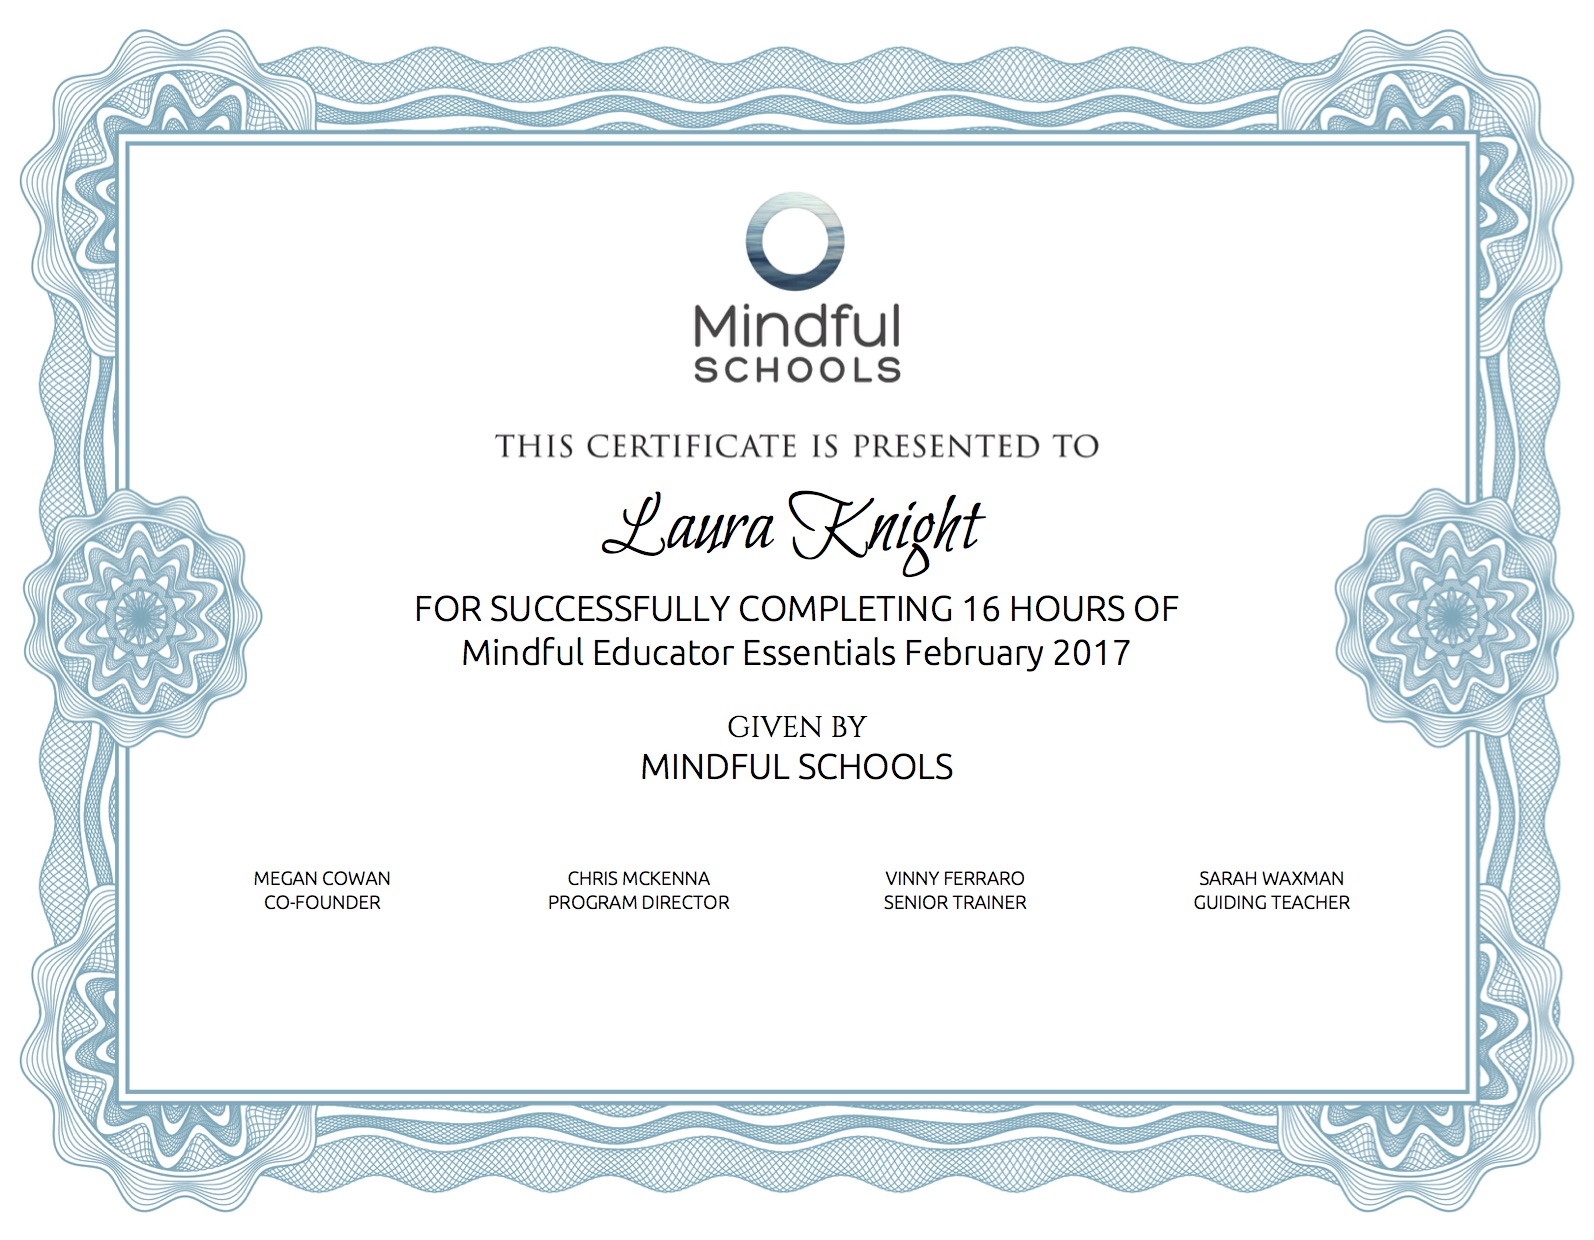 Mindful_Educator_Essentials_February_2017_2-Certificate_of_Completion_11652.jpg